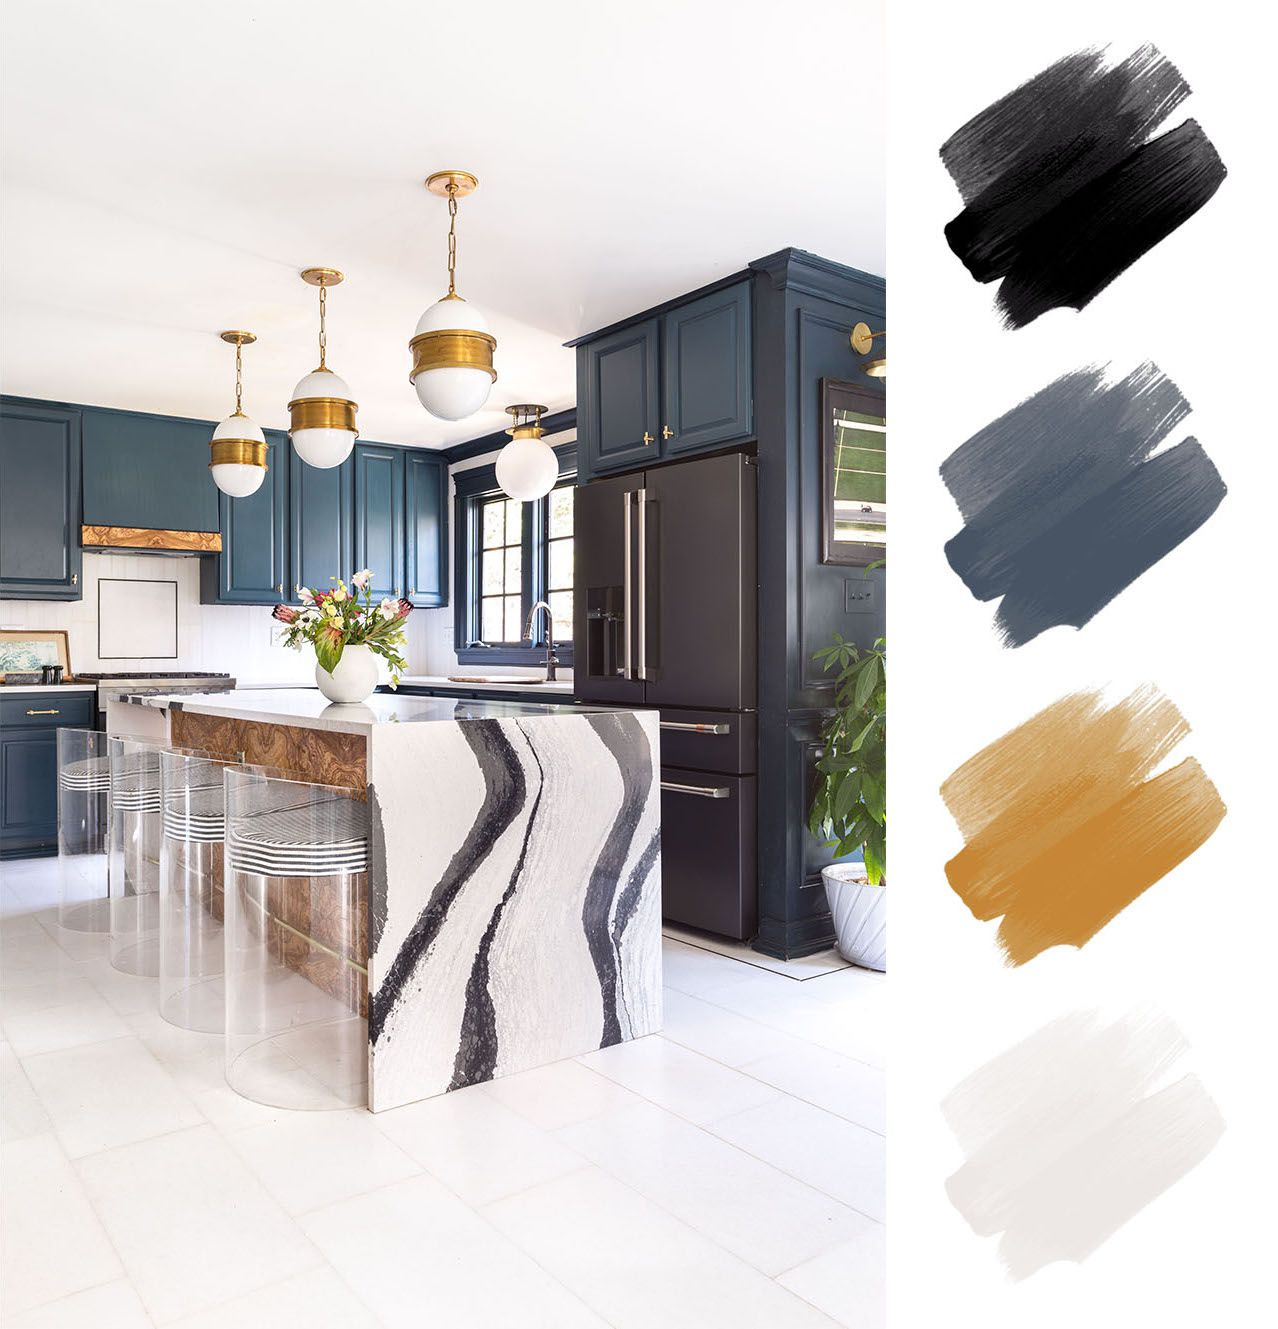 6 Beautiful Kitchen Color Schemes For Every Style According To Designers